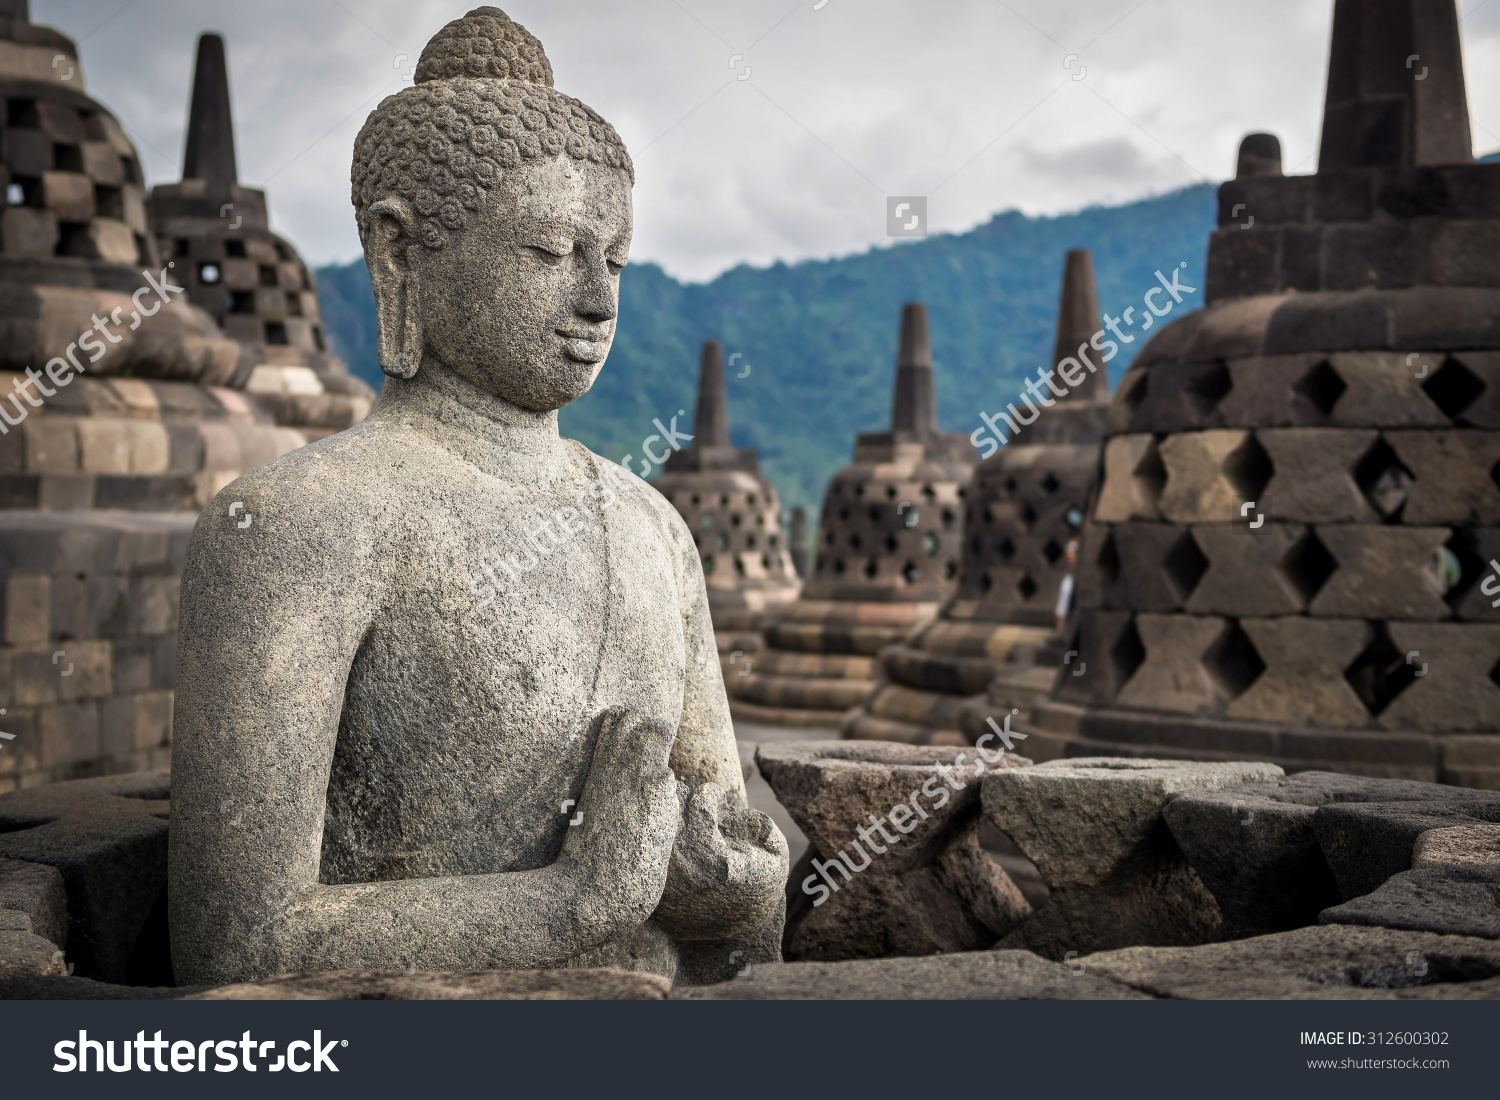 stock-photo-ancient-buddha-statue-at-borobudur-temple-in-yogyakarta-java-indonesia-312600302